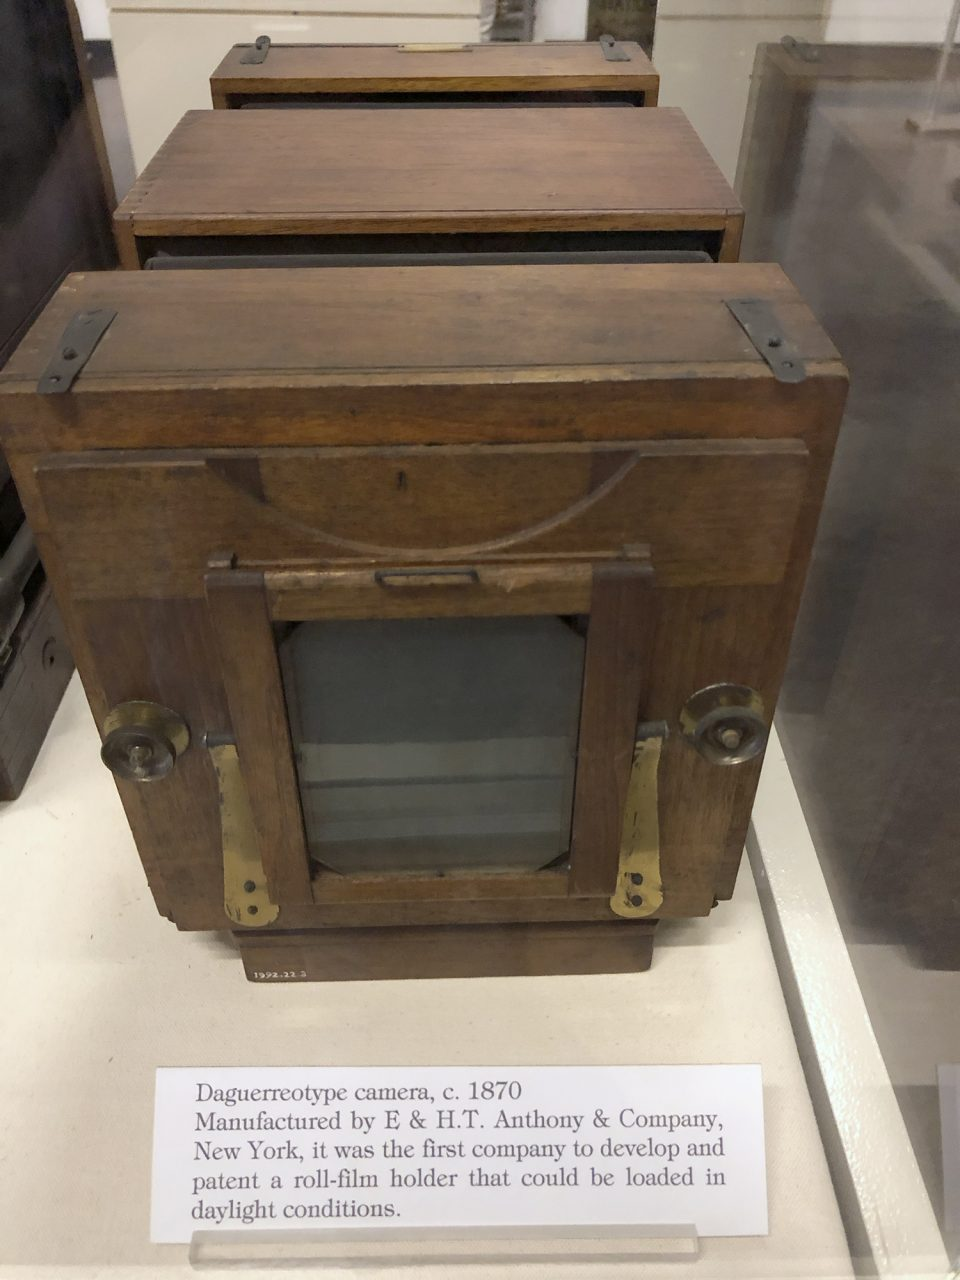 Daguerreotype camera, c. 1870 Manufactured by E & HT Anthony and Company, New York. It was the first company to develop and patent a roll-film holder that could be loaded in daylight conditions.